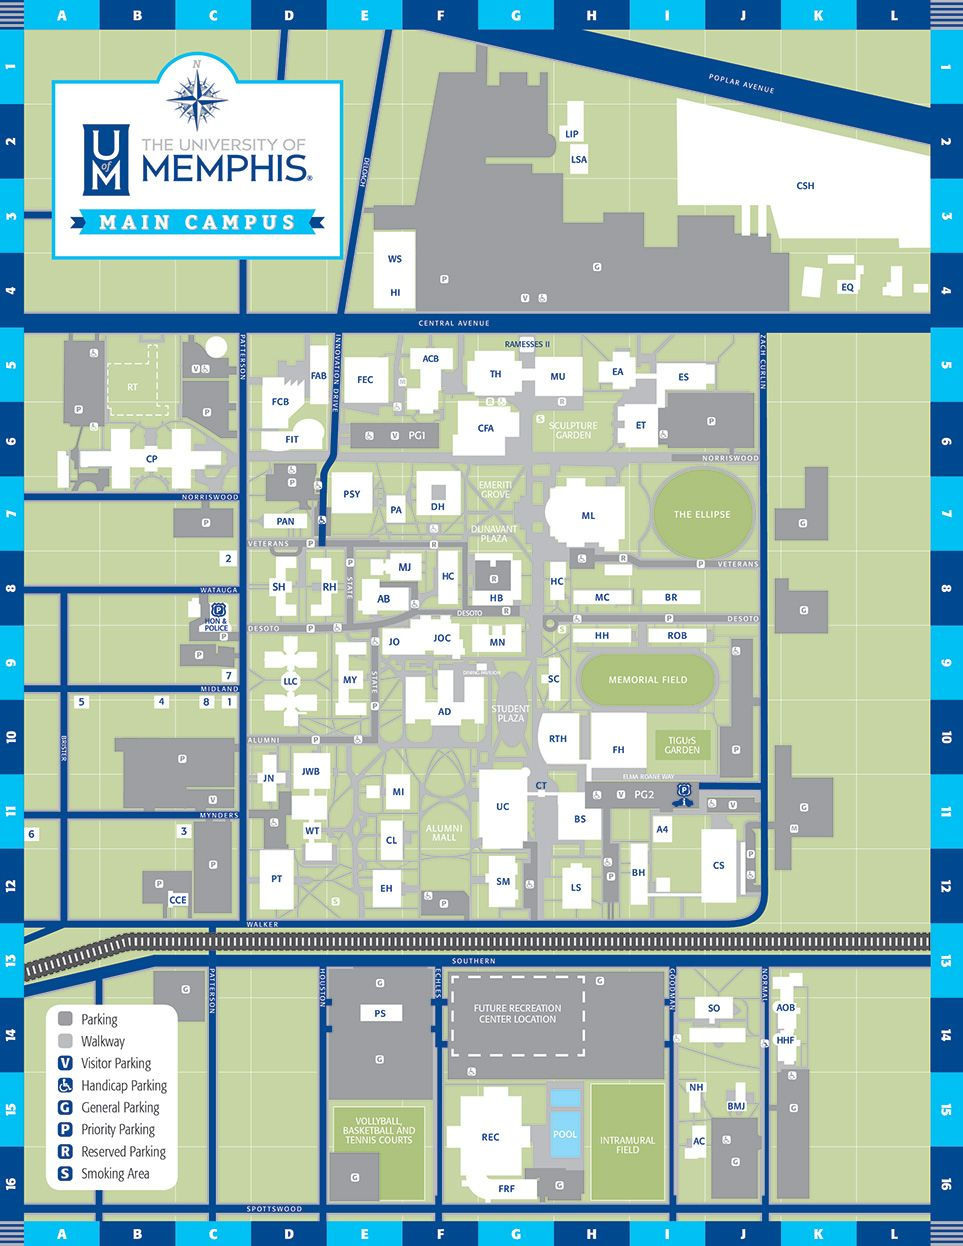 University Of Memphis Campus Map : university, memphis, campus, Campus, Campus,